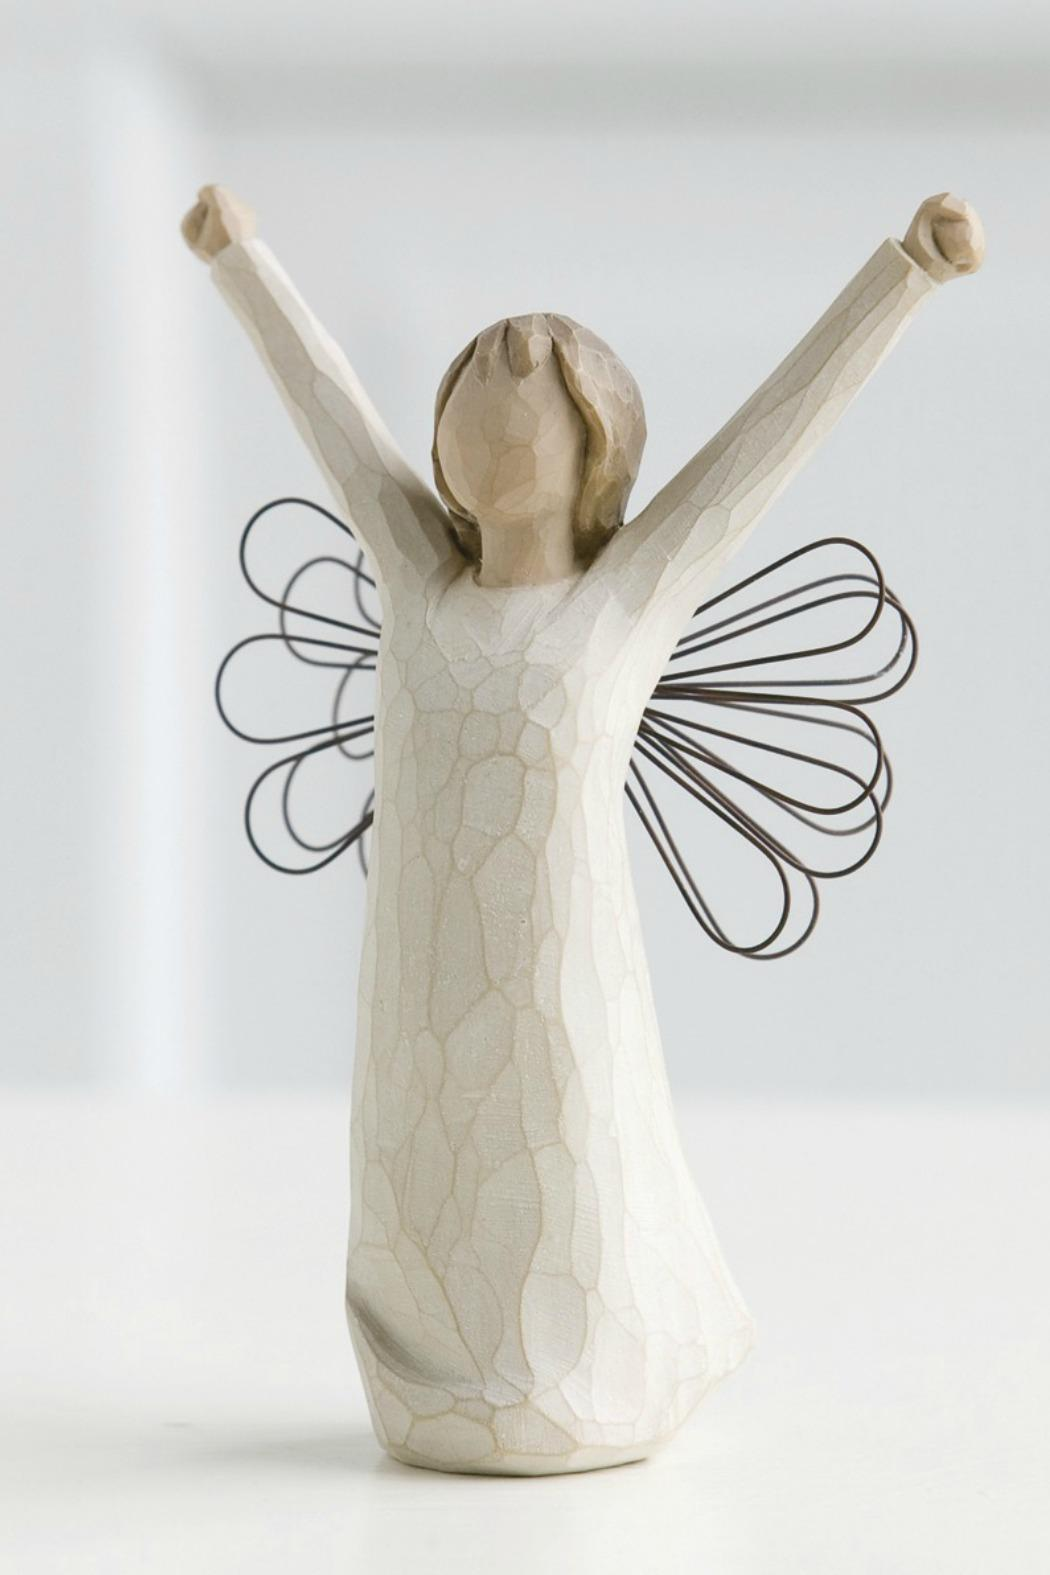 Willow Tree(r) by Susan Lordi, from DEMDACO Courage Figurine - Main Image